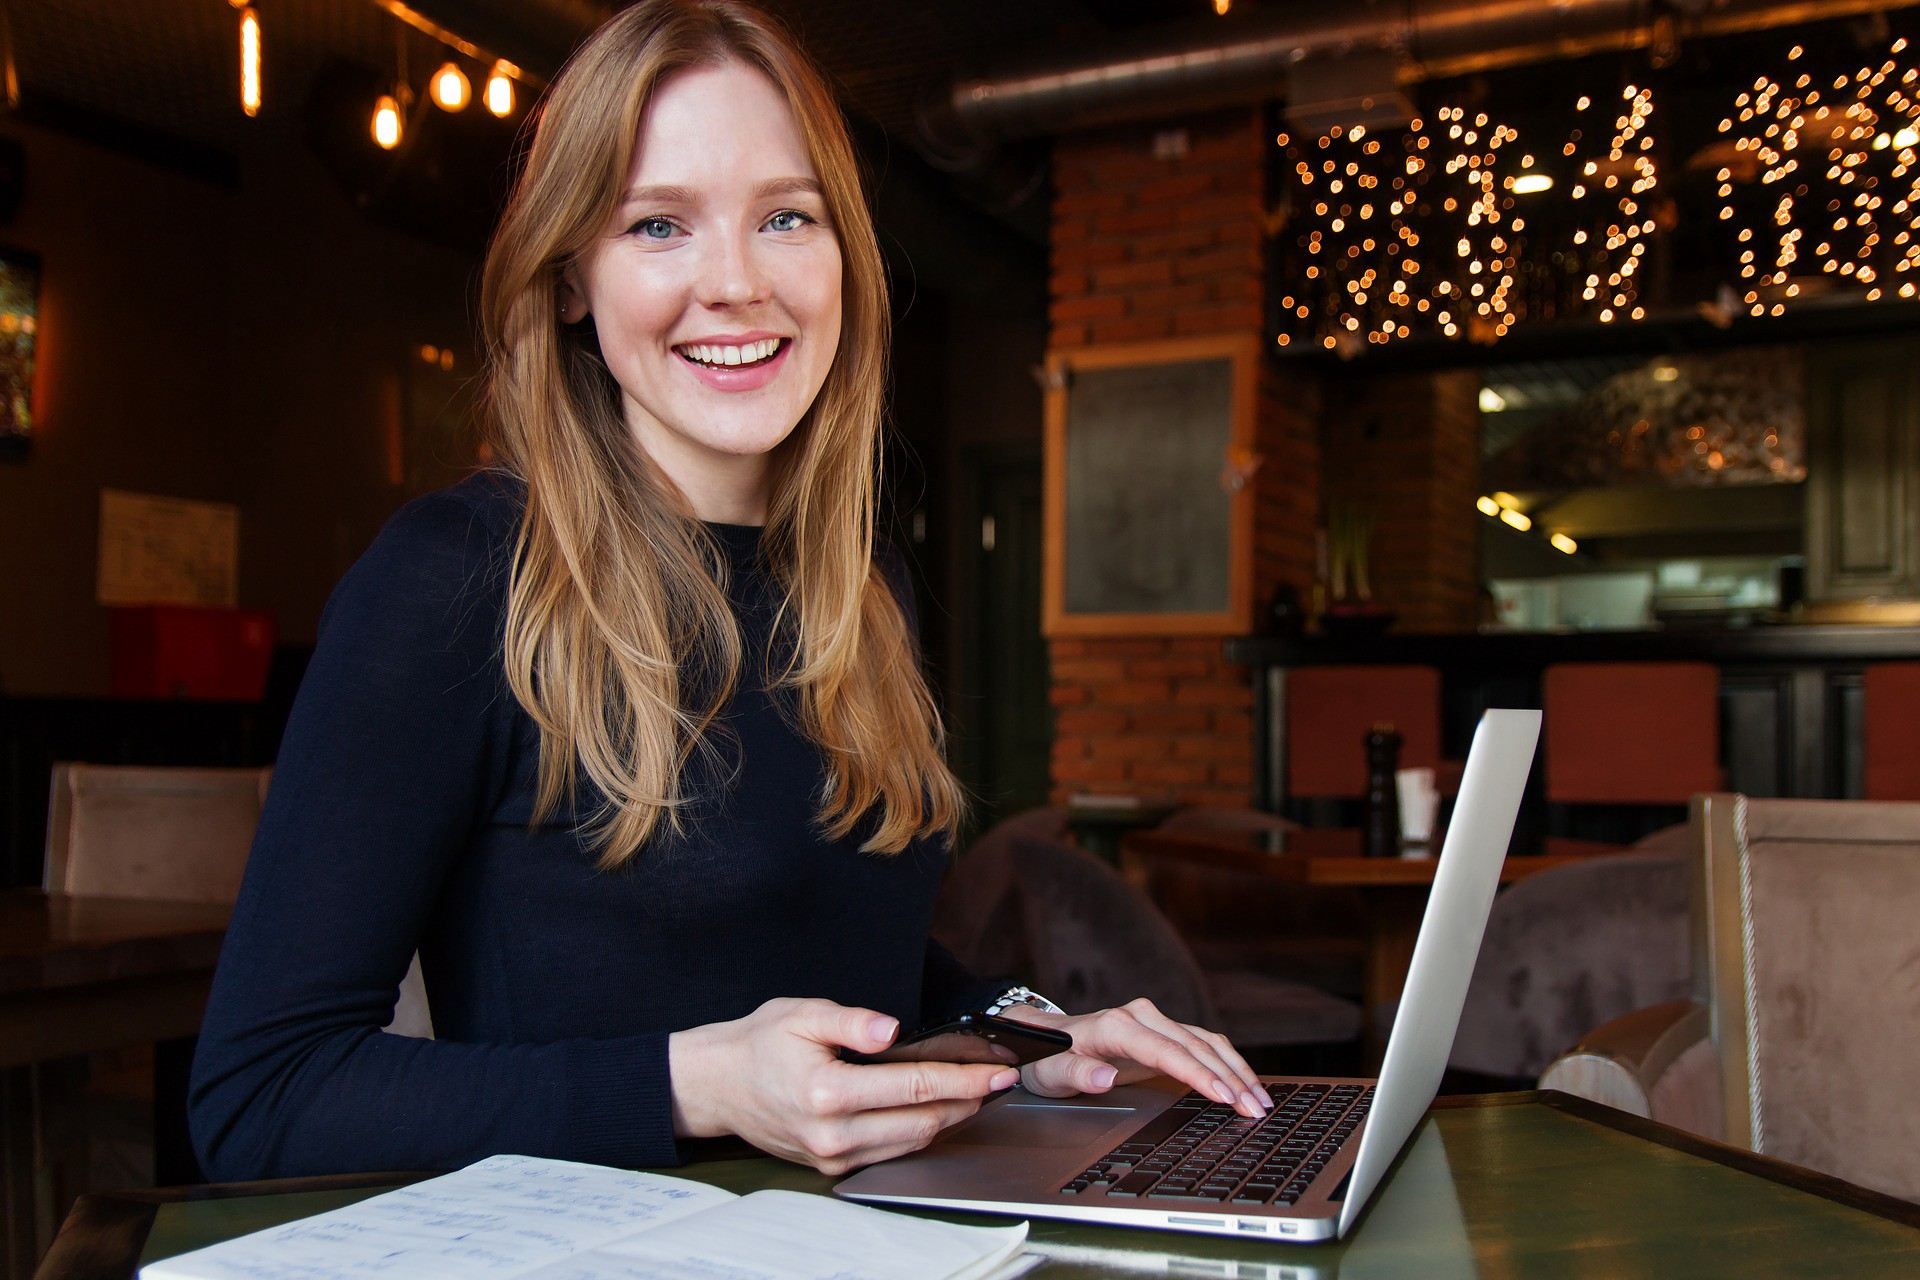 Young woman in font of a laptop smiling at the camera.